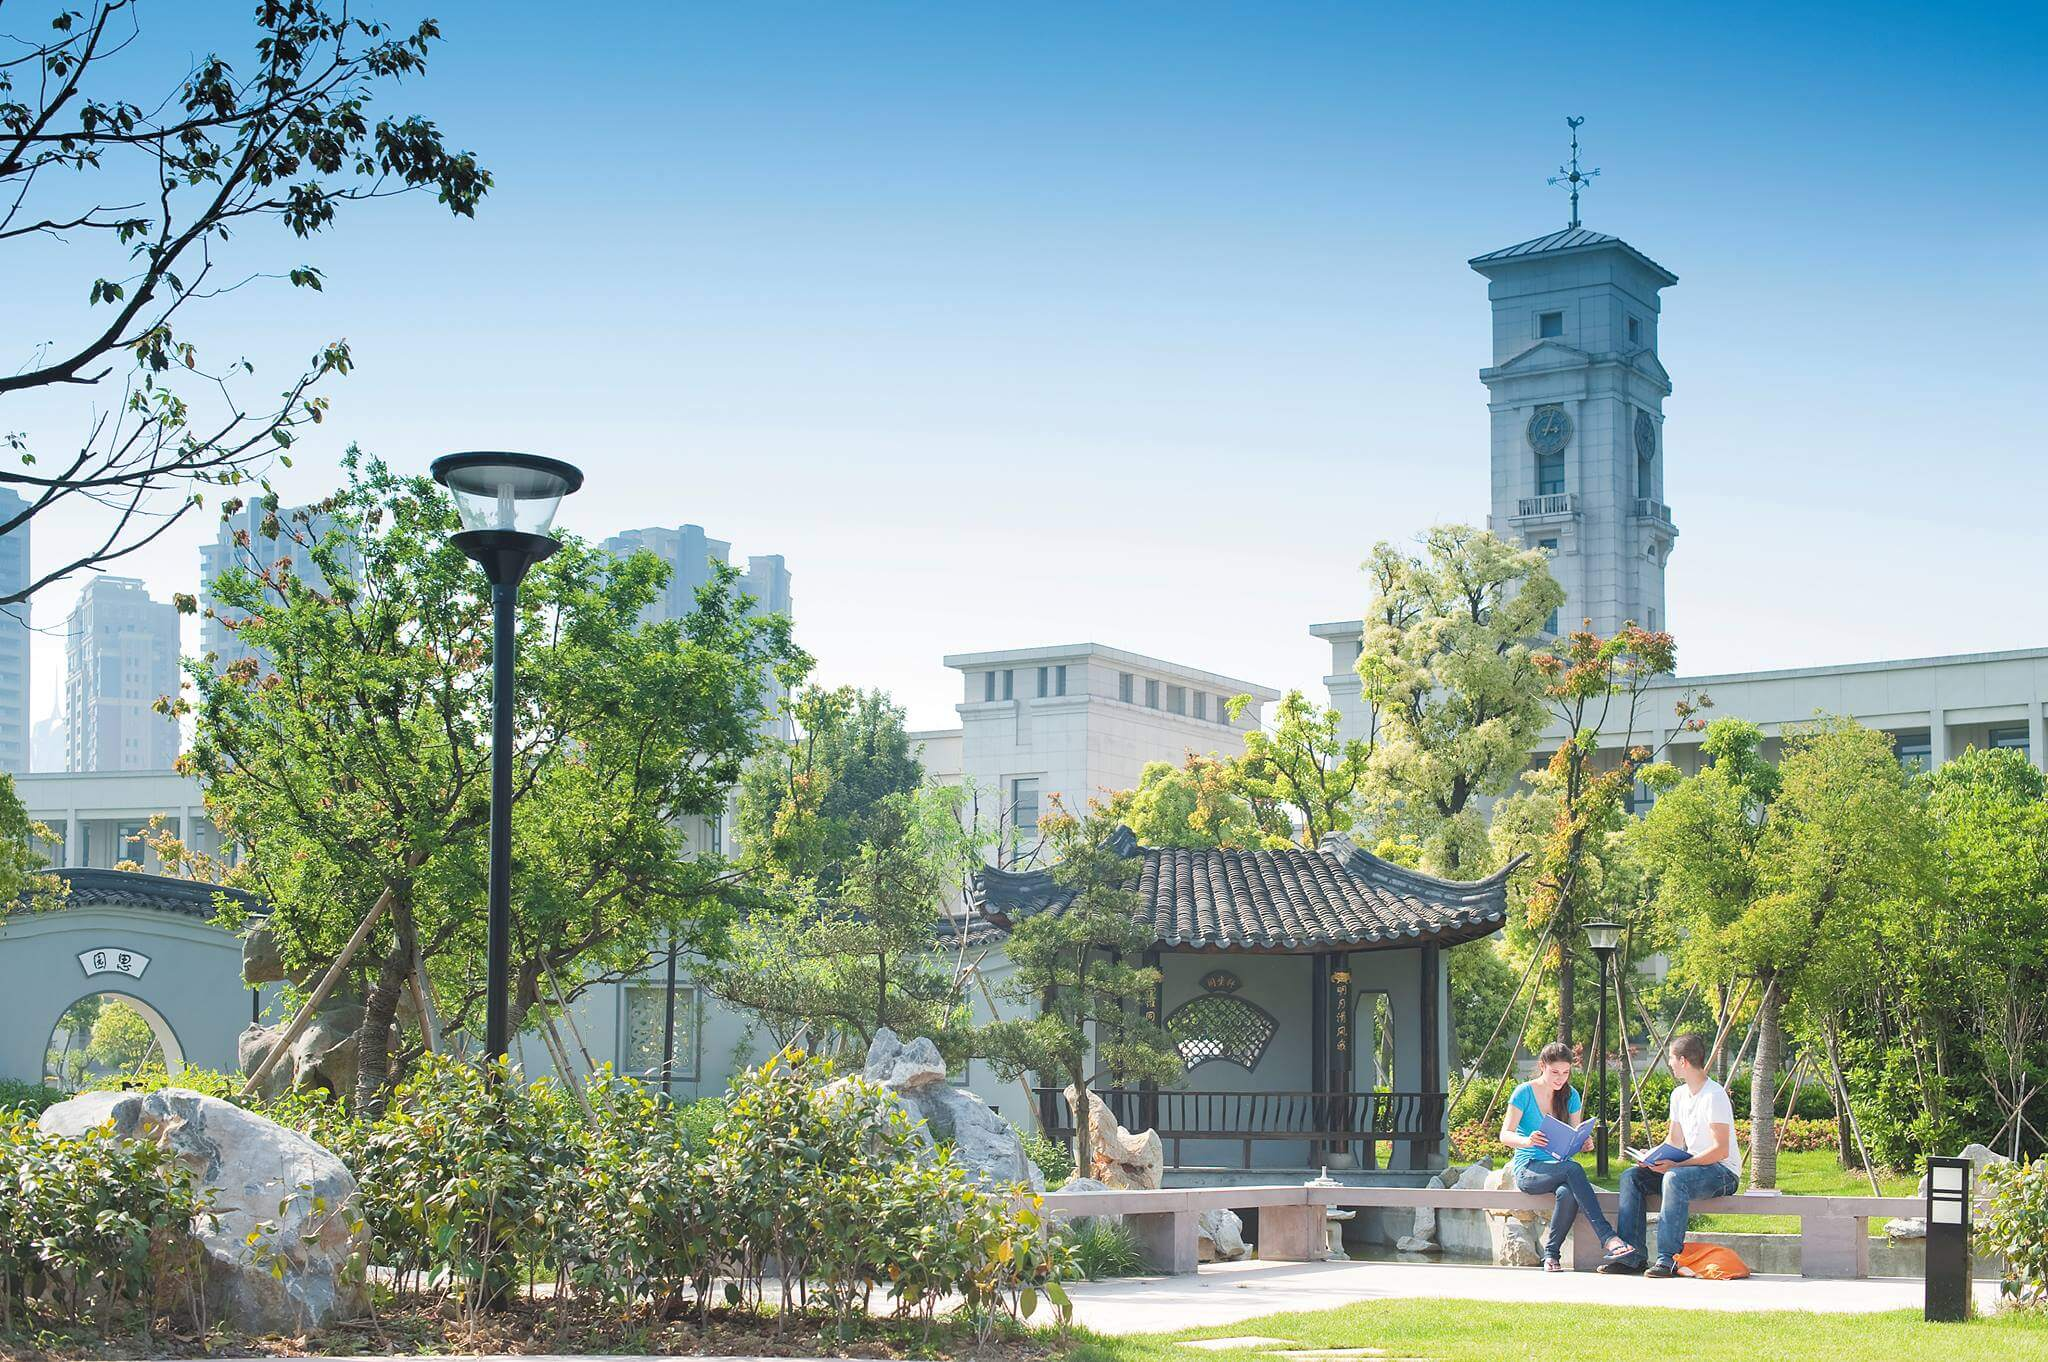 University of Nottingham Ningbo China: A global university with unparalleled opportunities